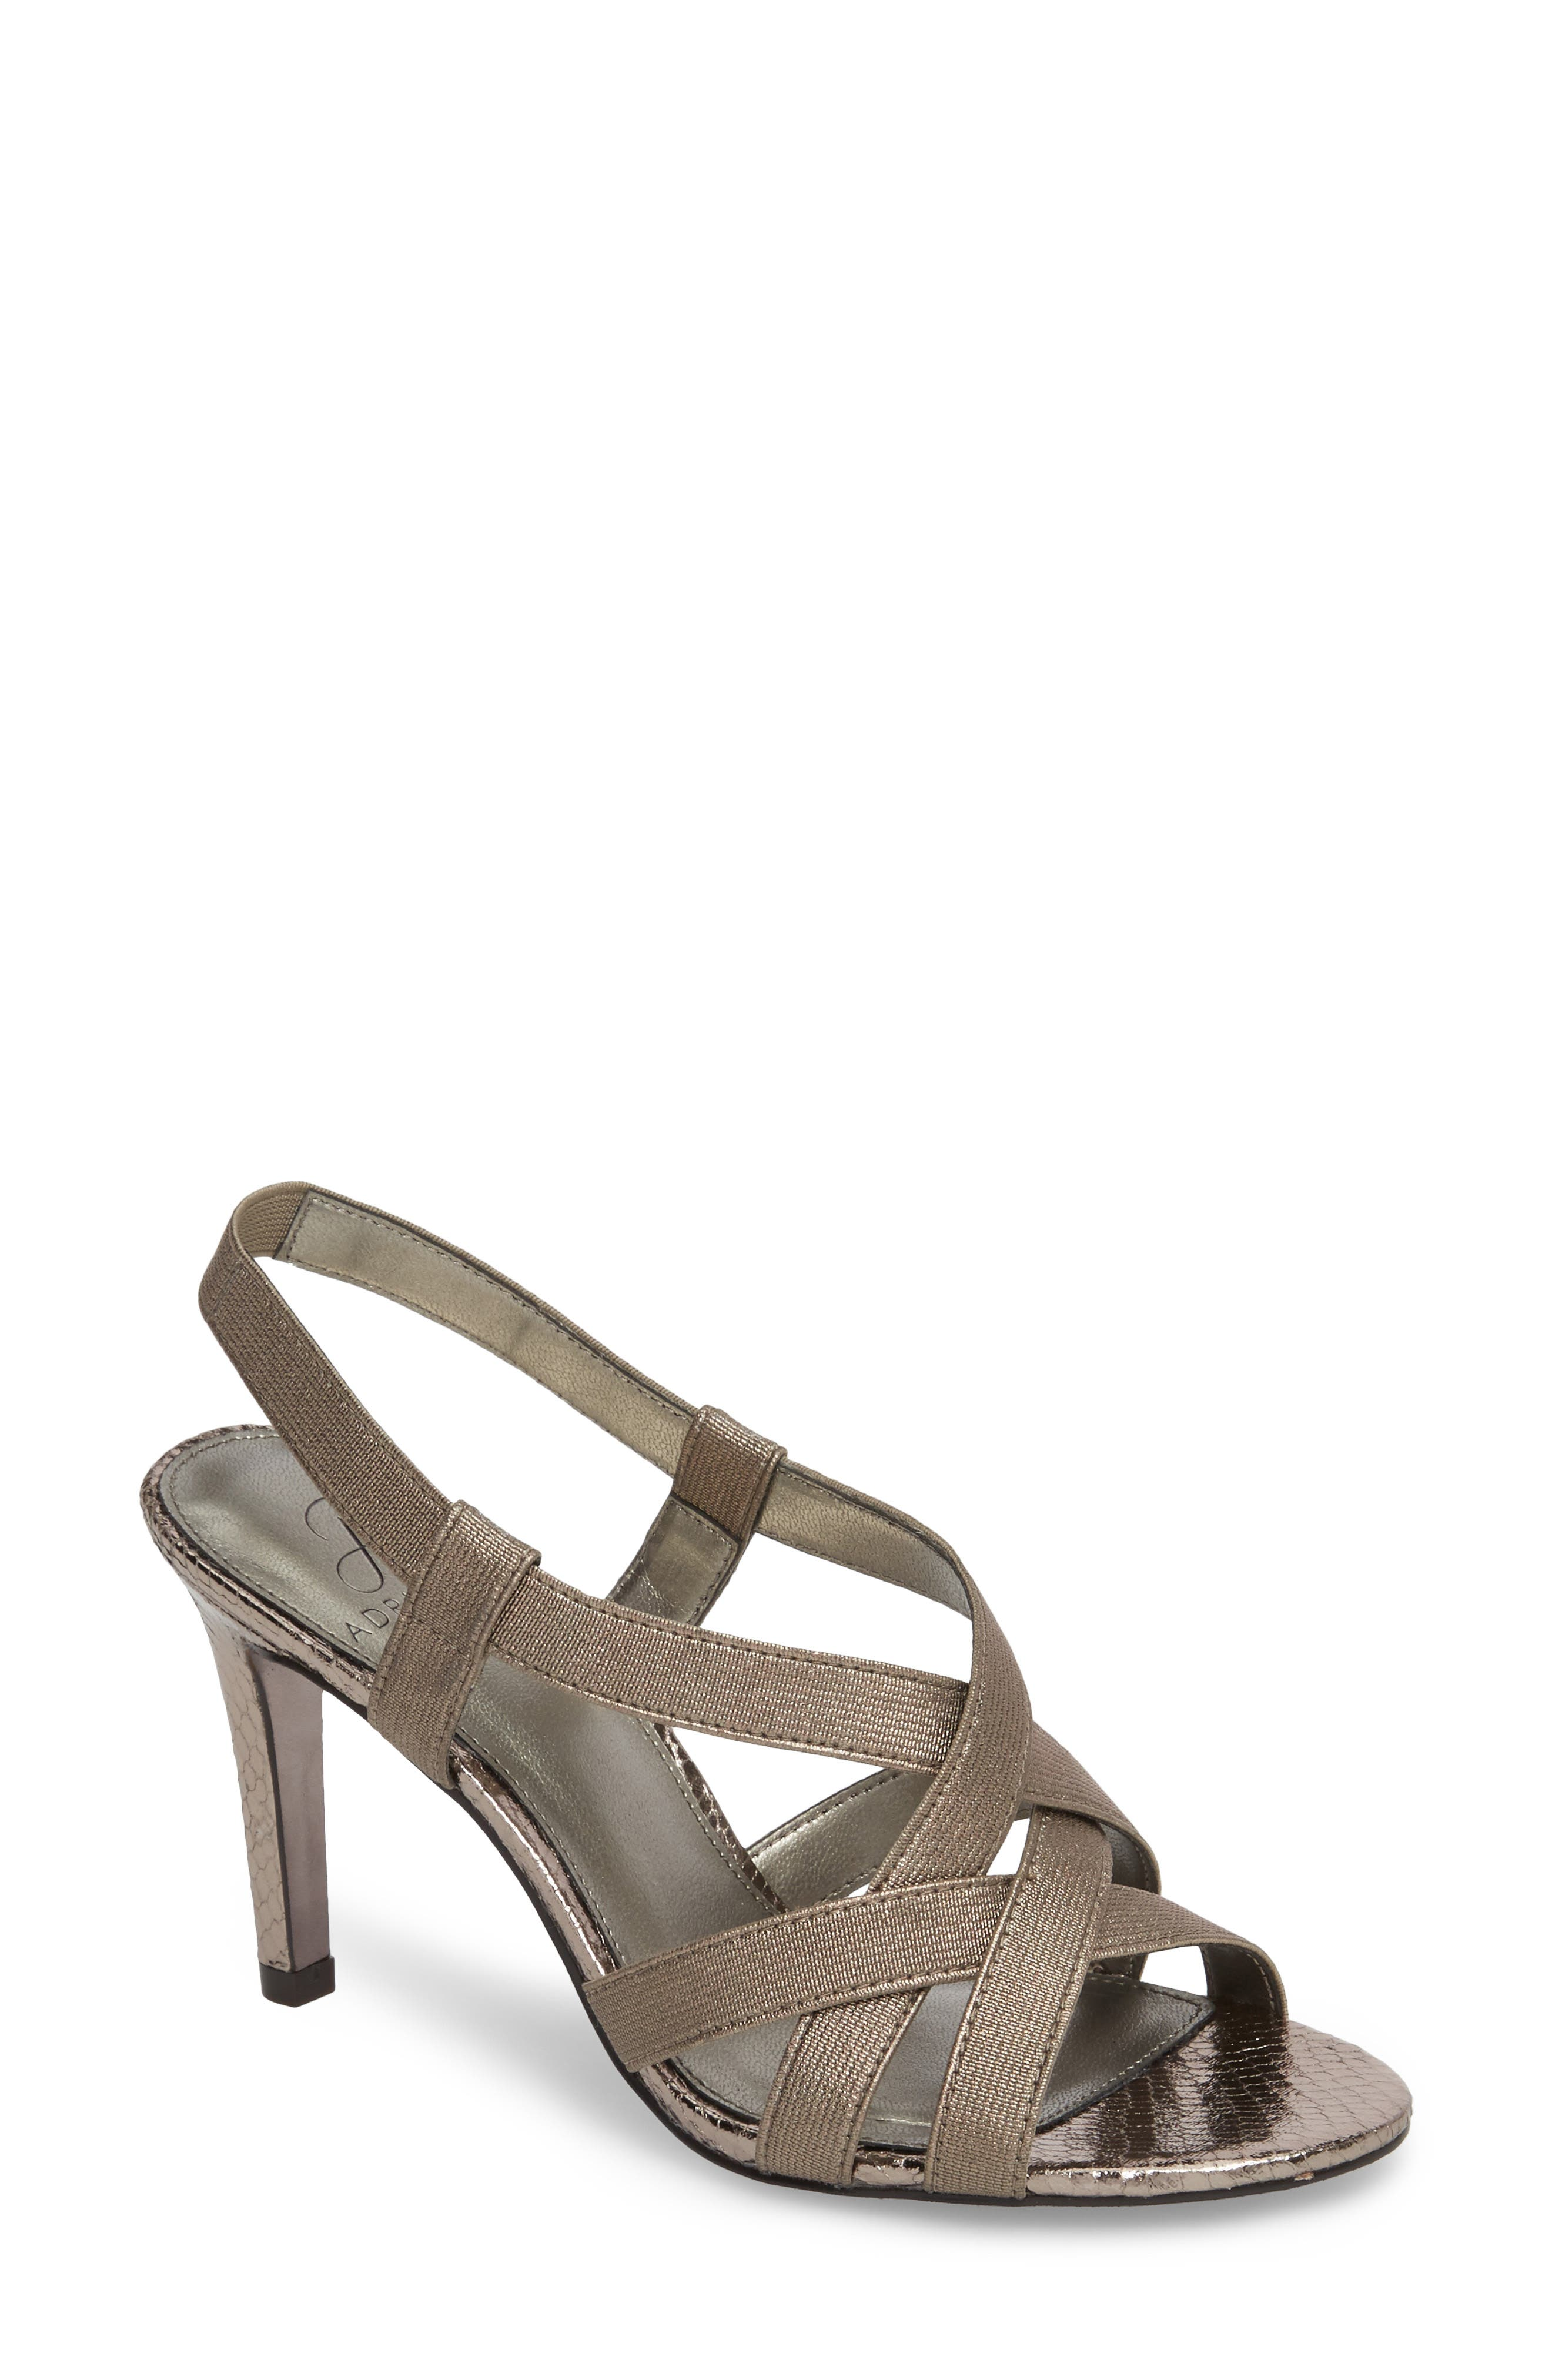 Addie Sandal,                             Main thumbnail 1, color,                             Gunmetal Fabric